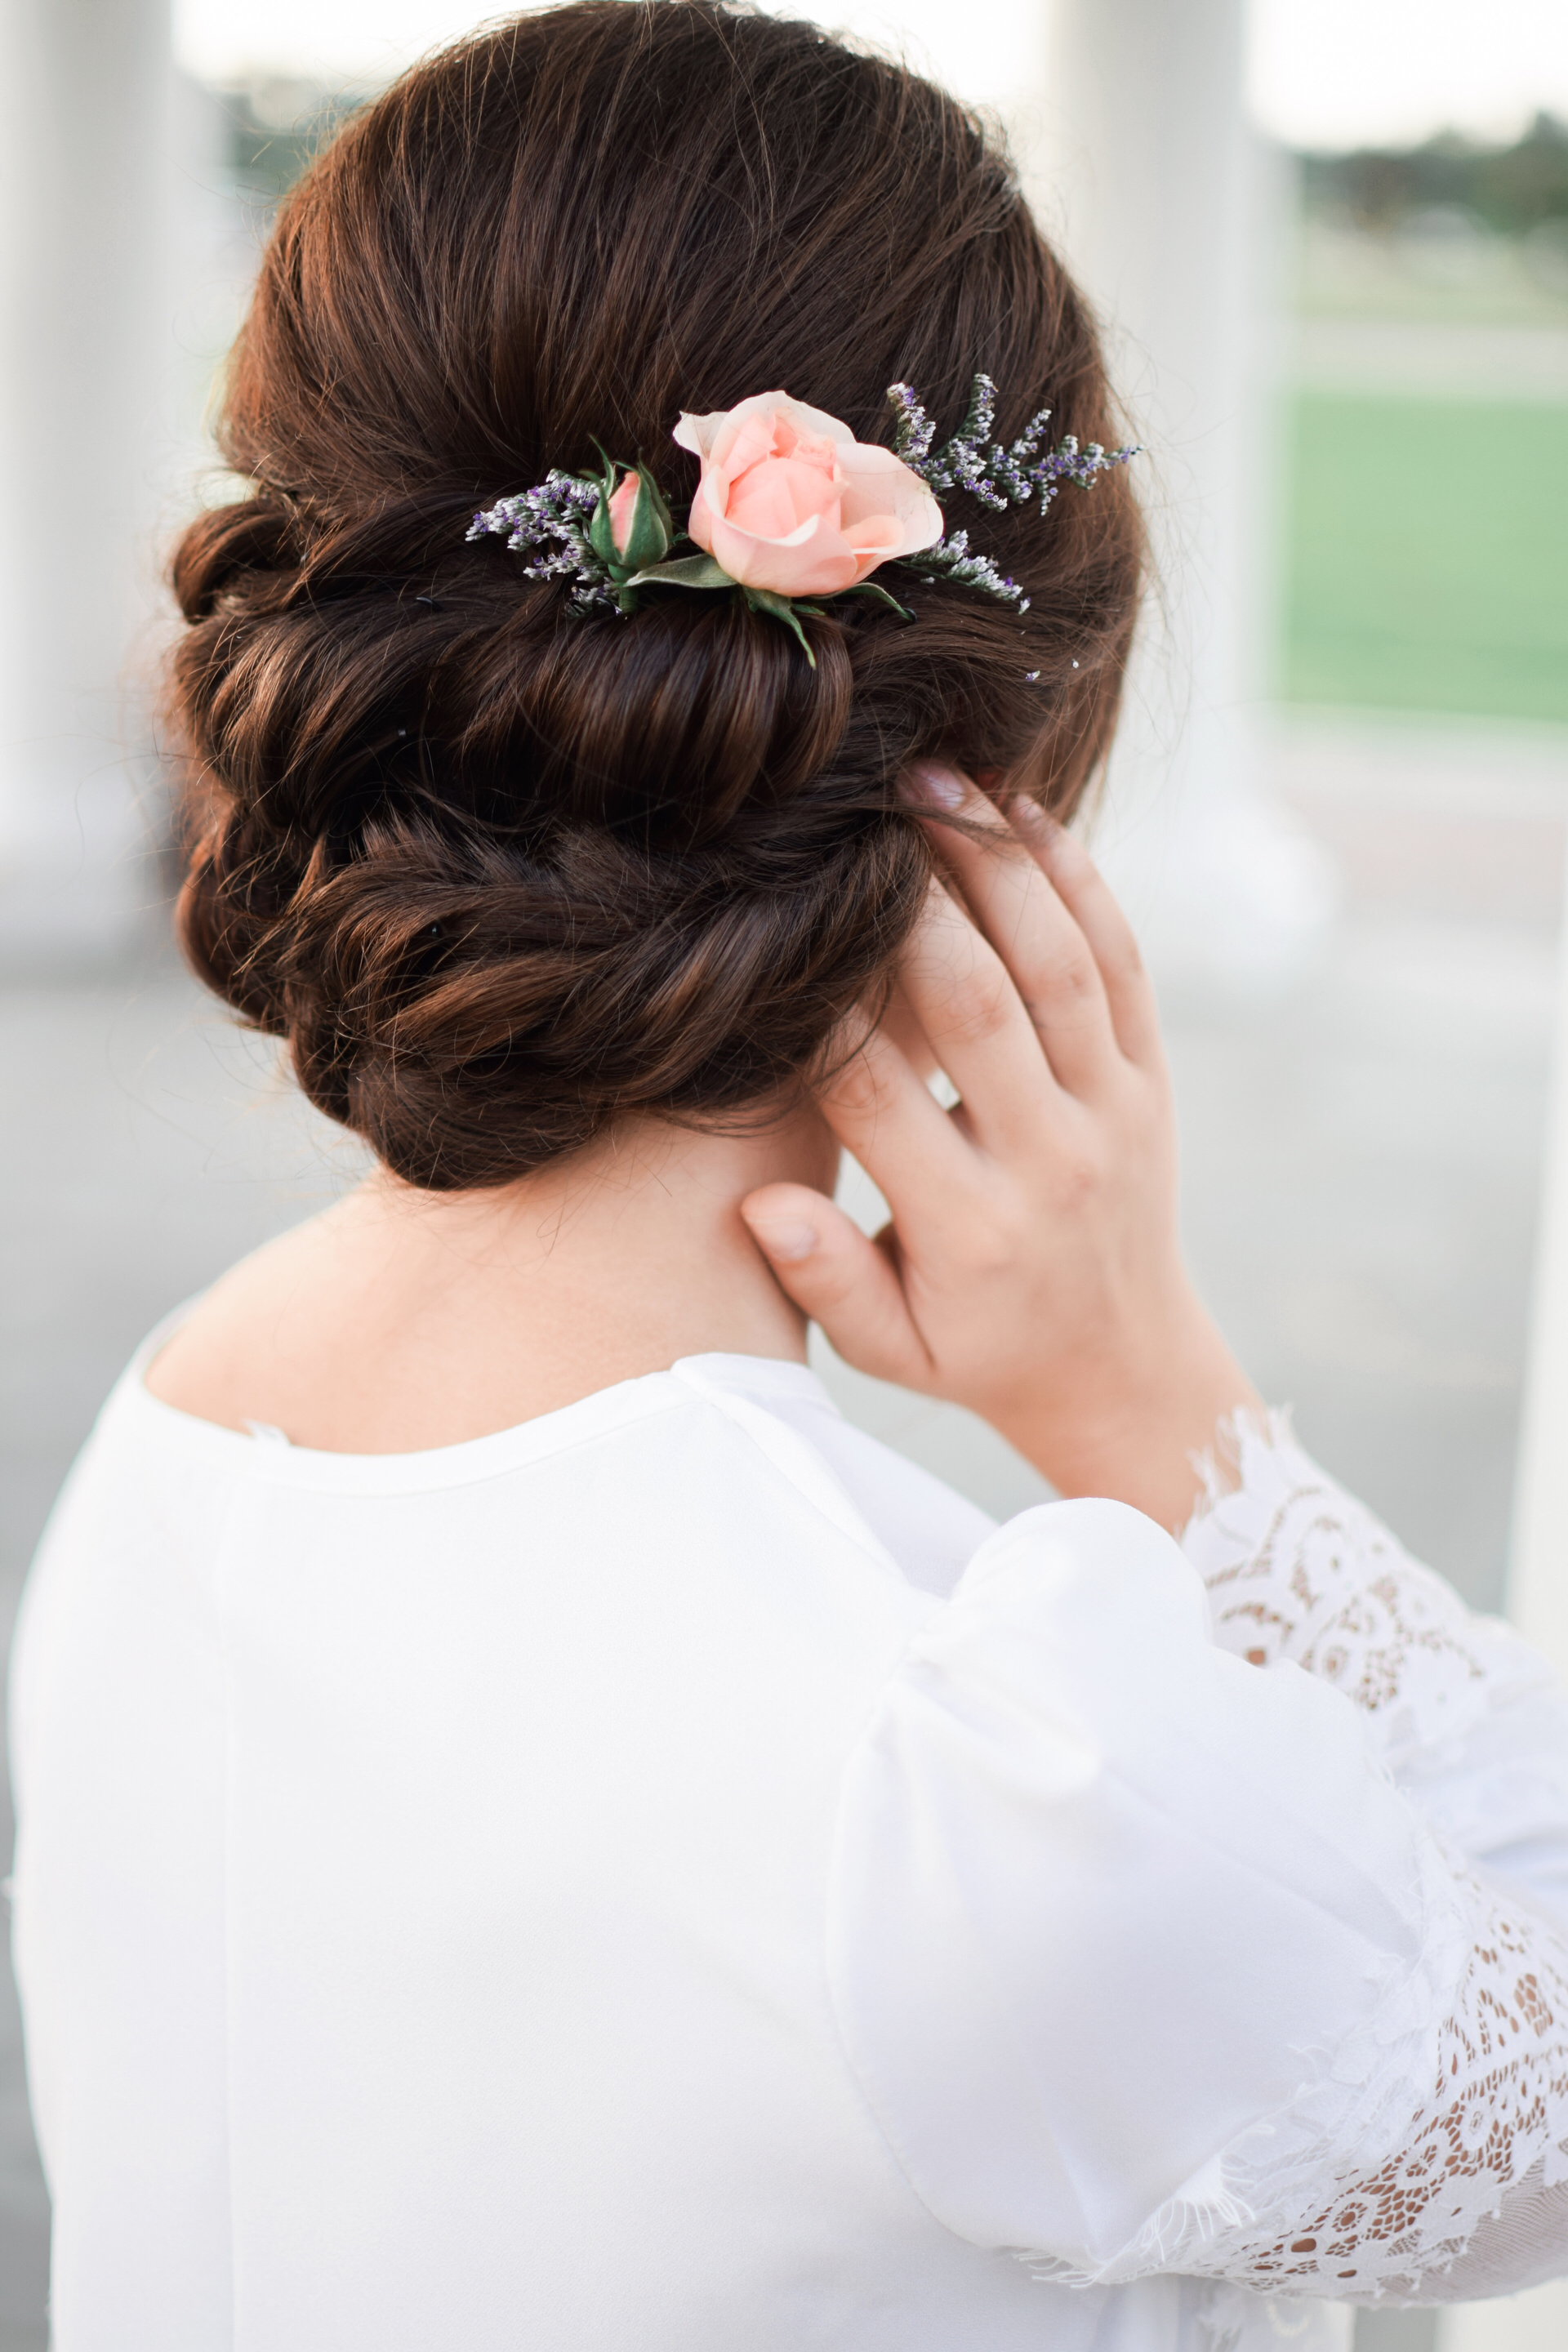 13+ adorable homecoming hairstyles ideas in 2019 | updos